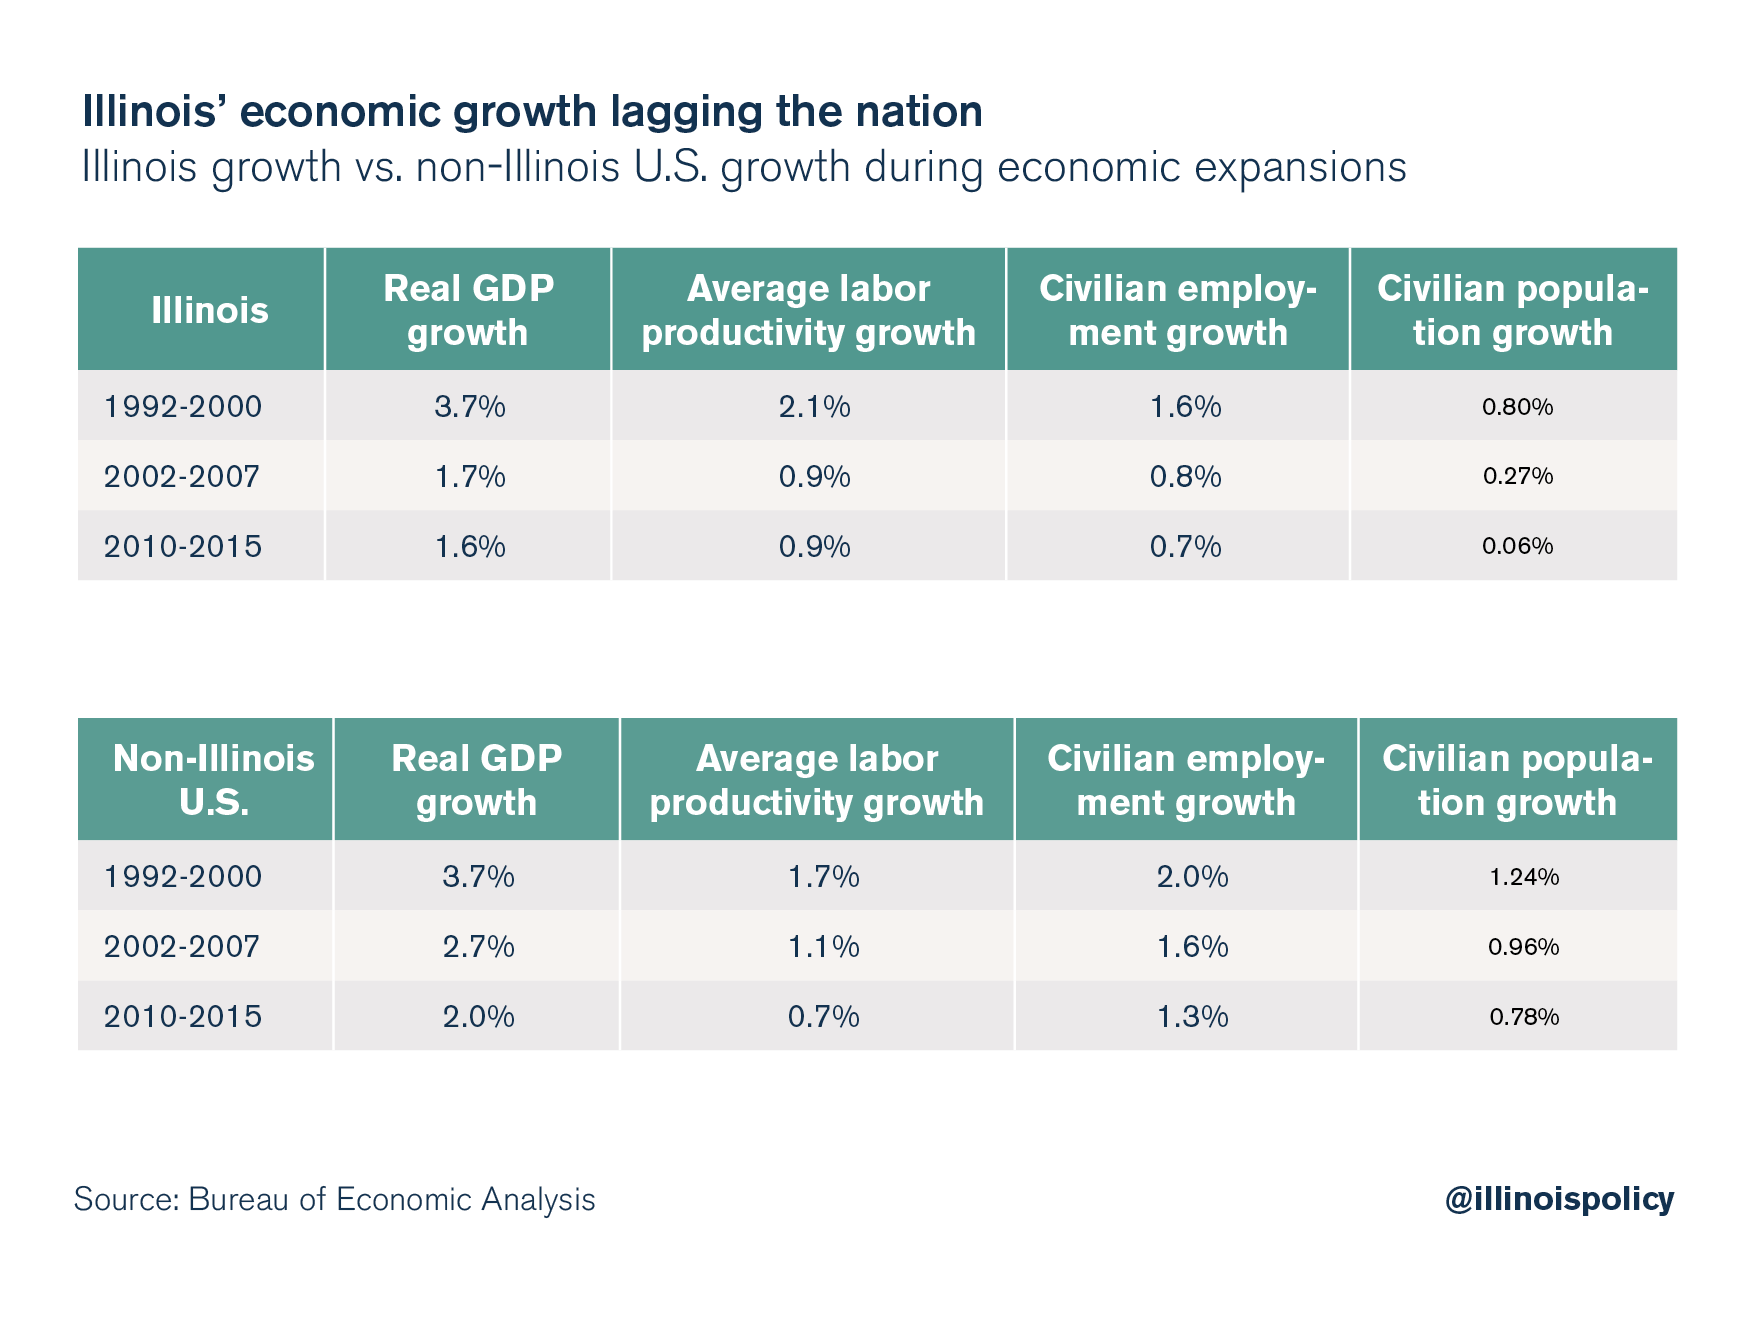 Illinois' economic growth lagging the nation